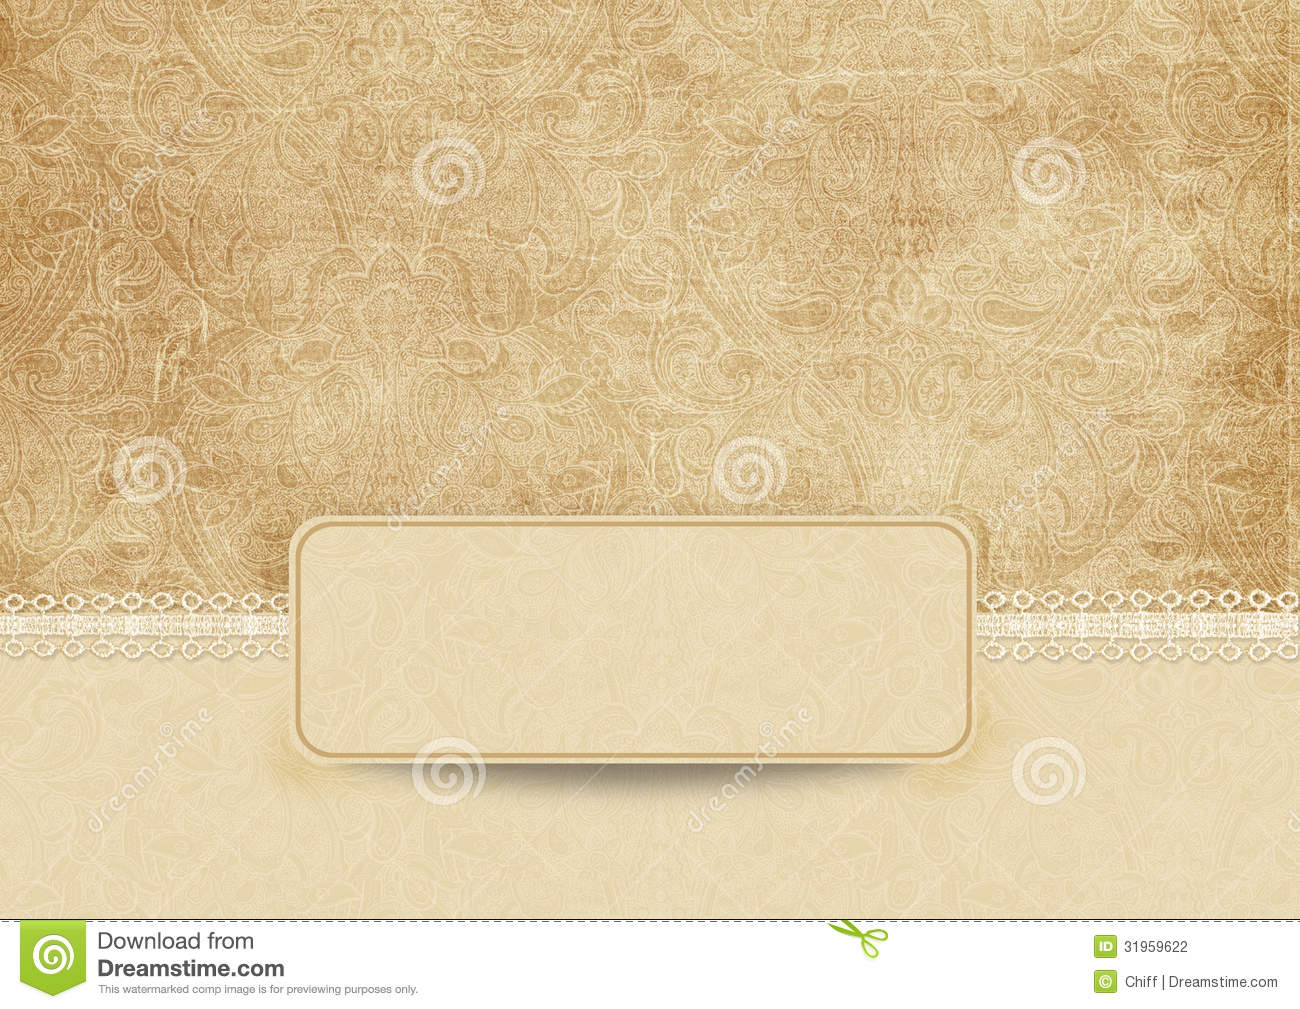 Cute Lace Wallpaper Elegant Vintage Background With Lace Stock Photography